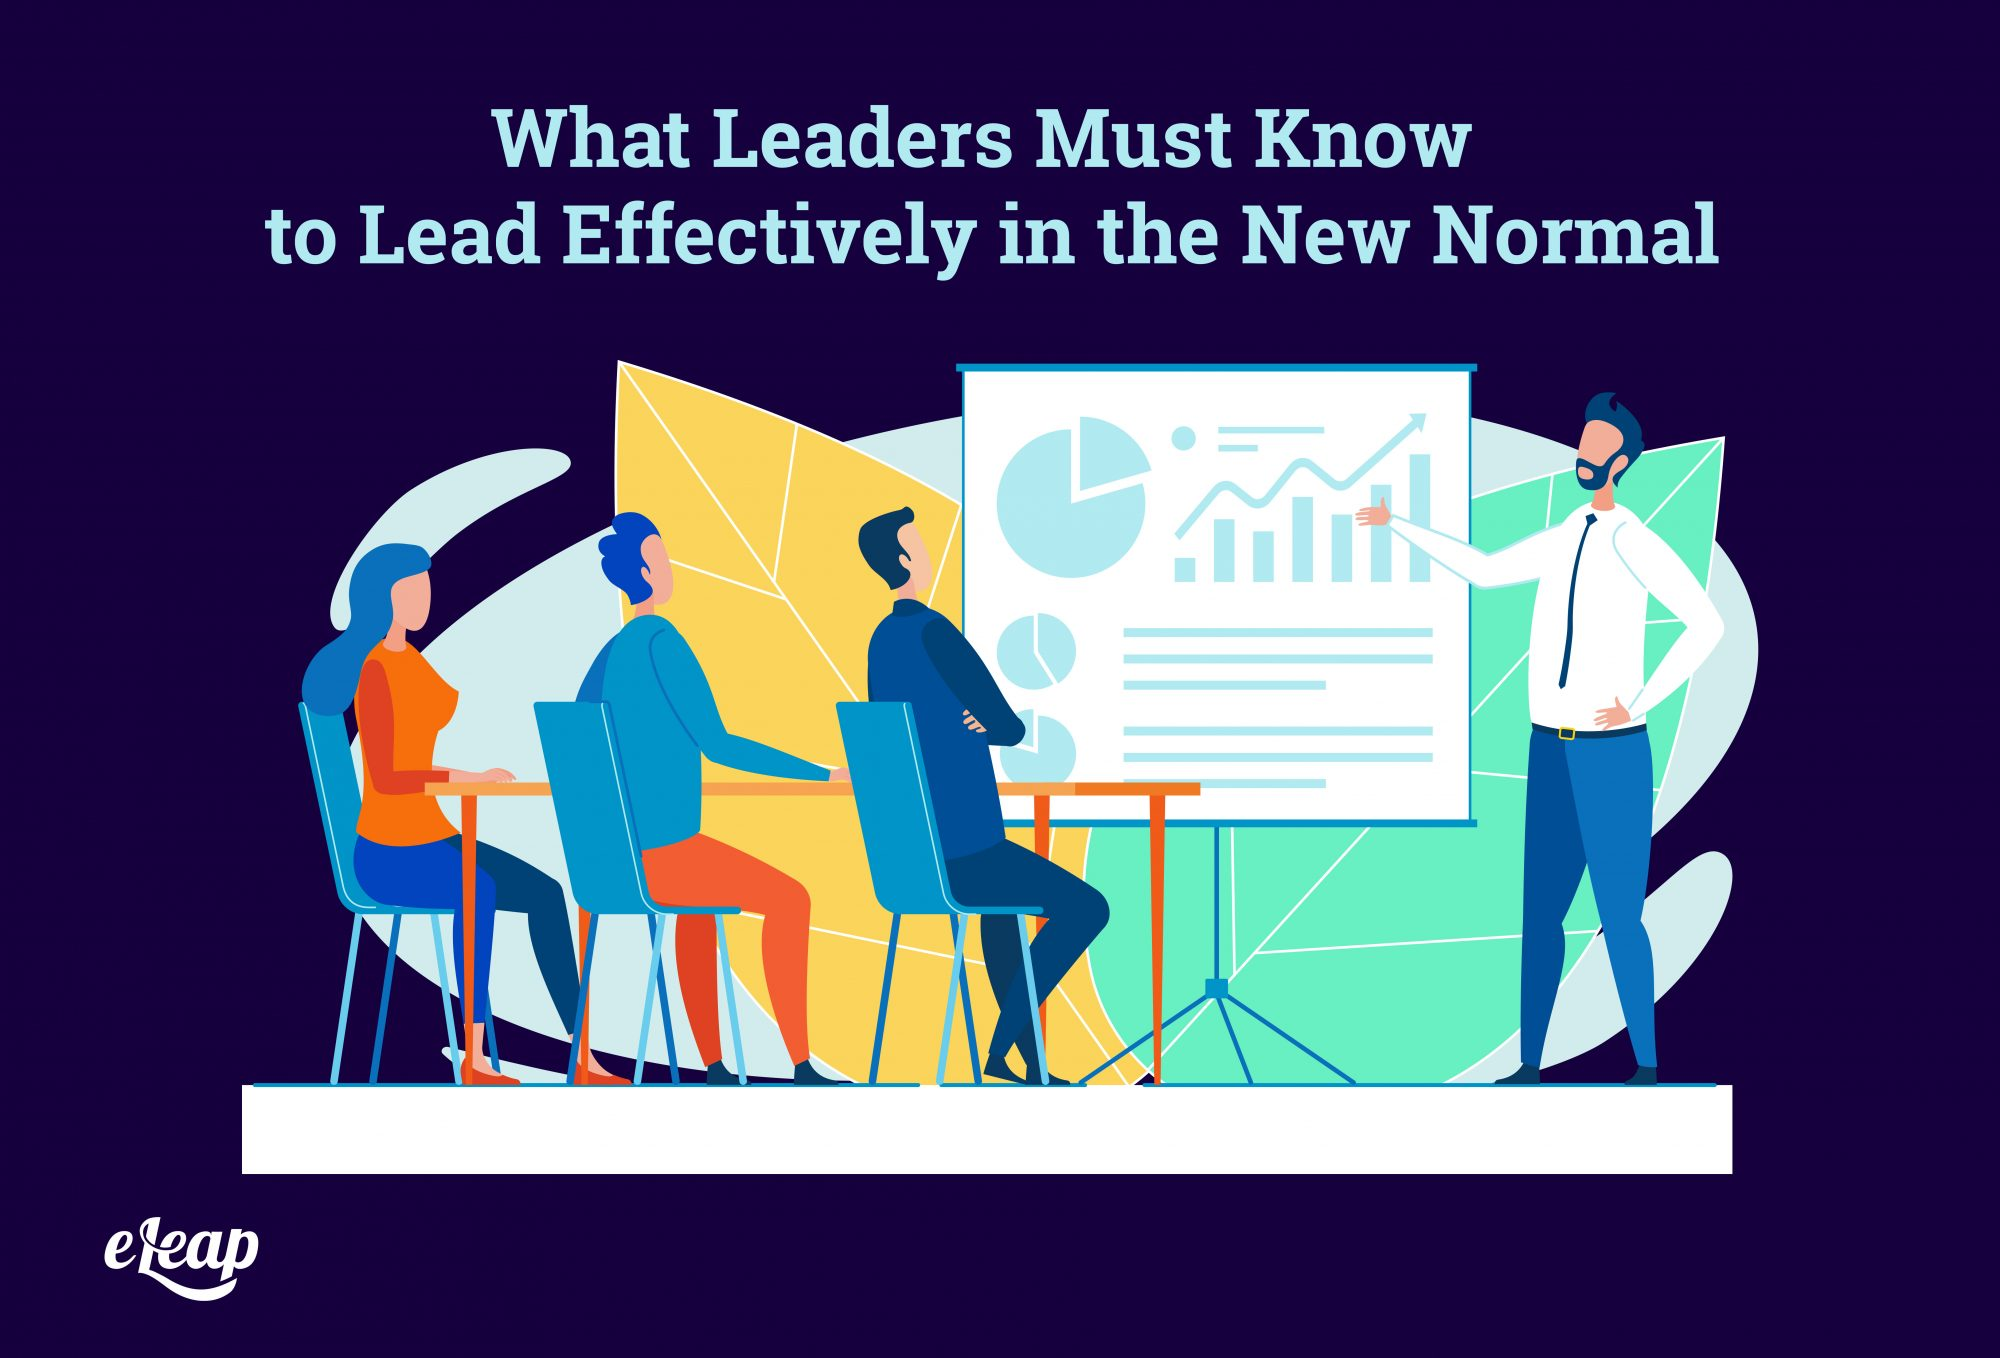 What Leaders Must Know to Lead Effectively in the New Normal